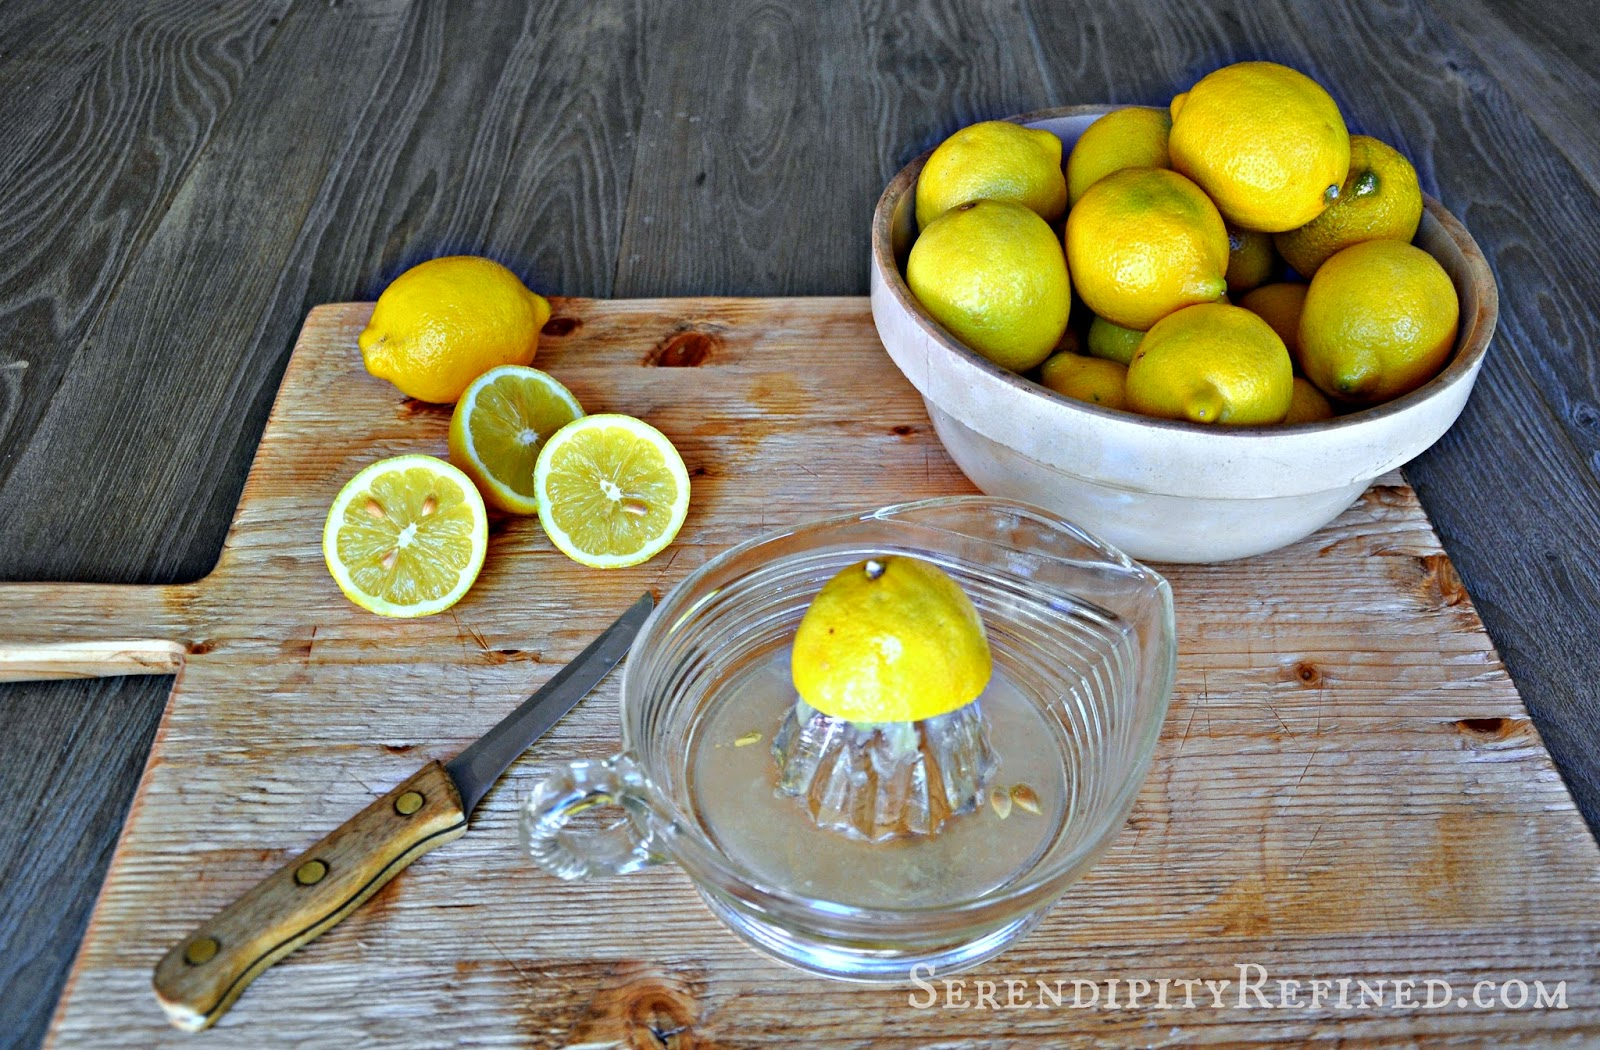 Serendipity Refined Blog: How to Make Lavender-Infused Lemonade